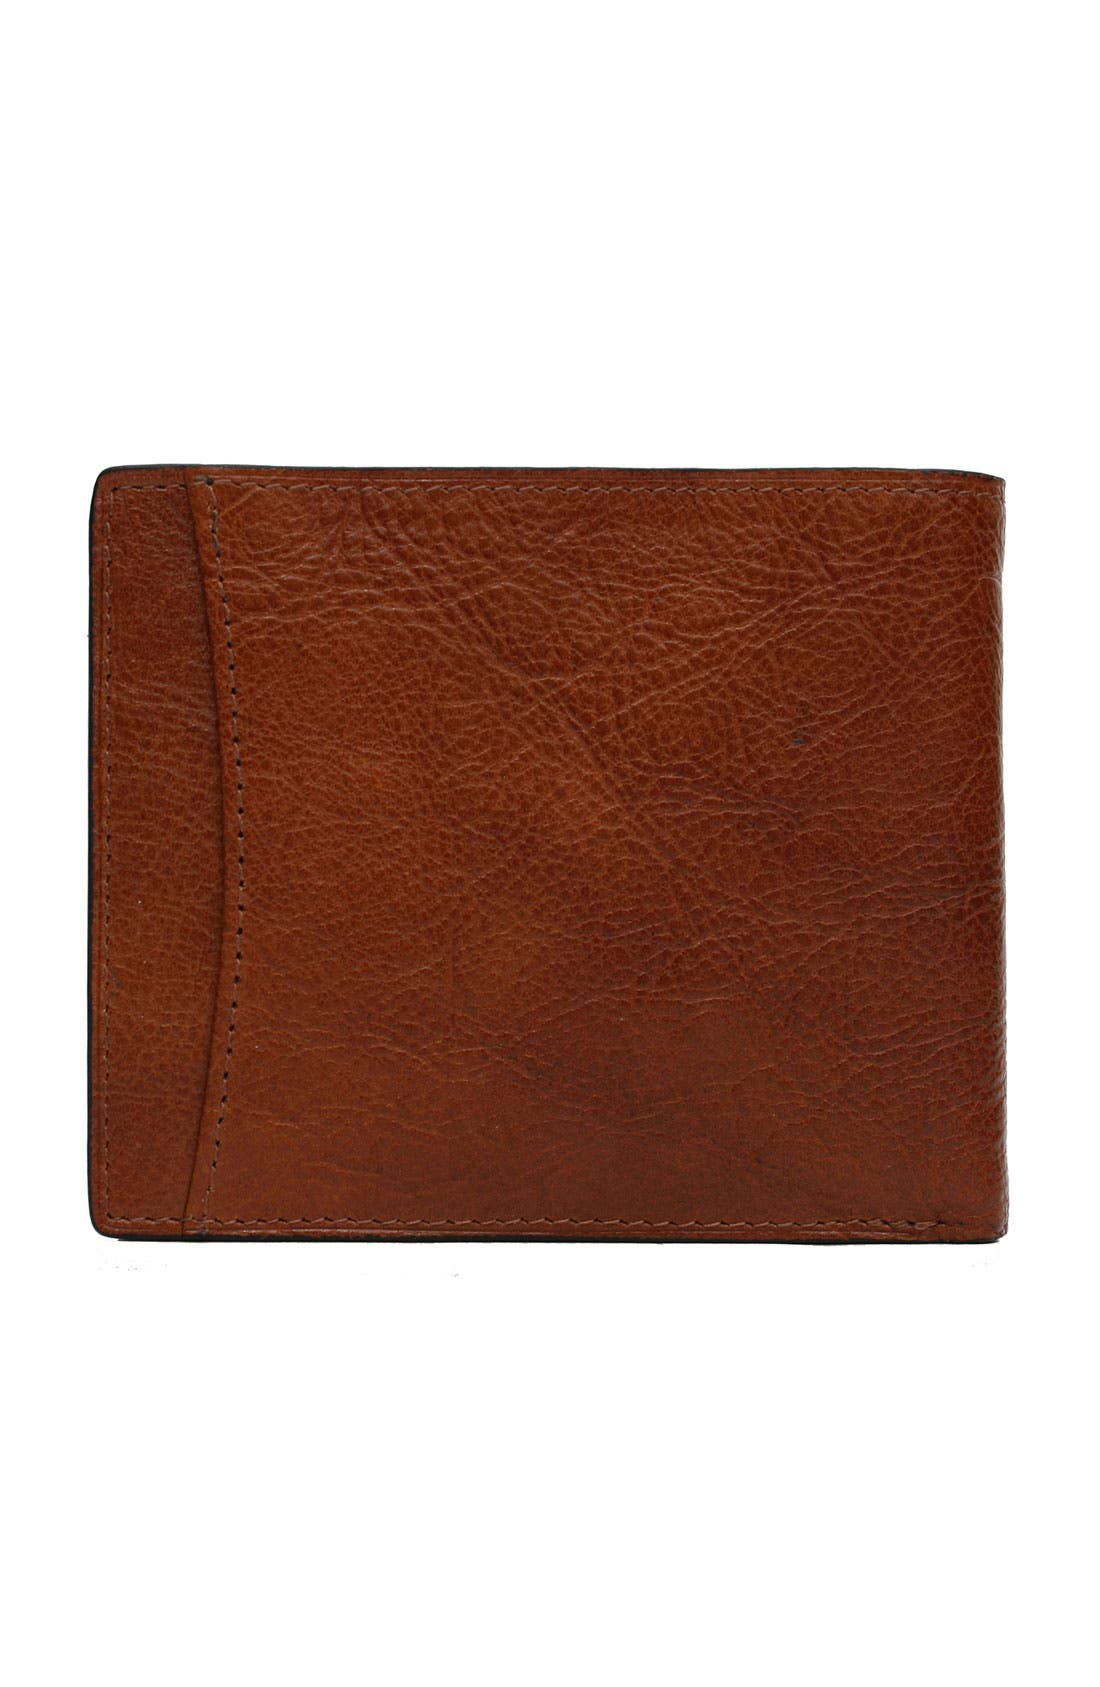 Alternate Image 1 Selected - Boconi 'Rinaldo - Slim' Bifold Wallet